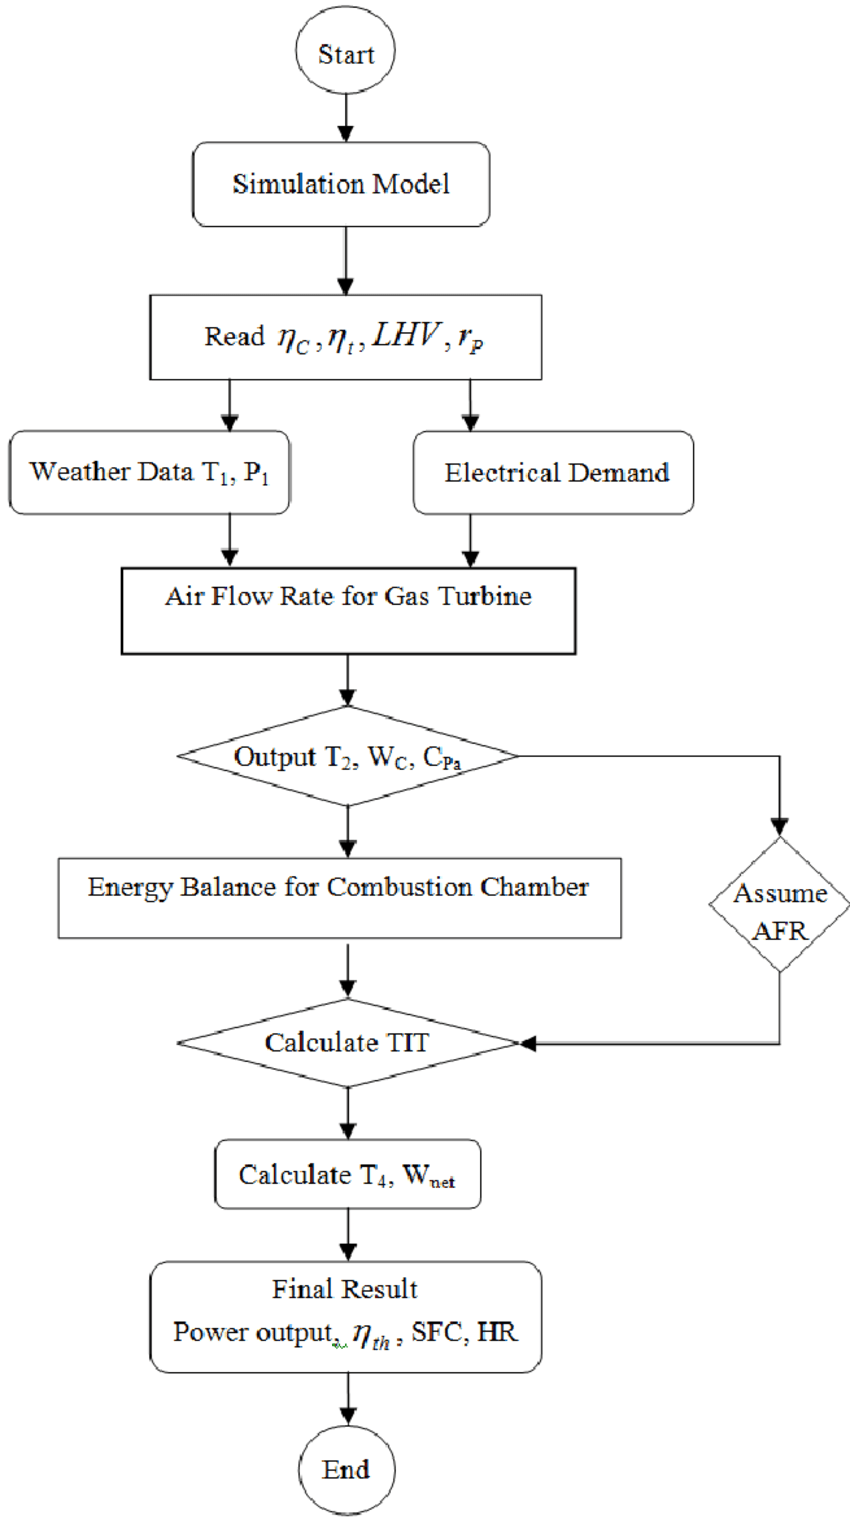 hight resolution of flowchart of simulation of performance process for simple gas turbine power plant